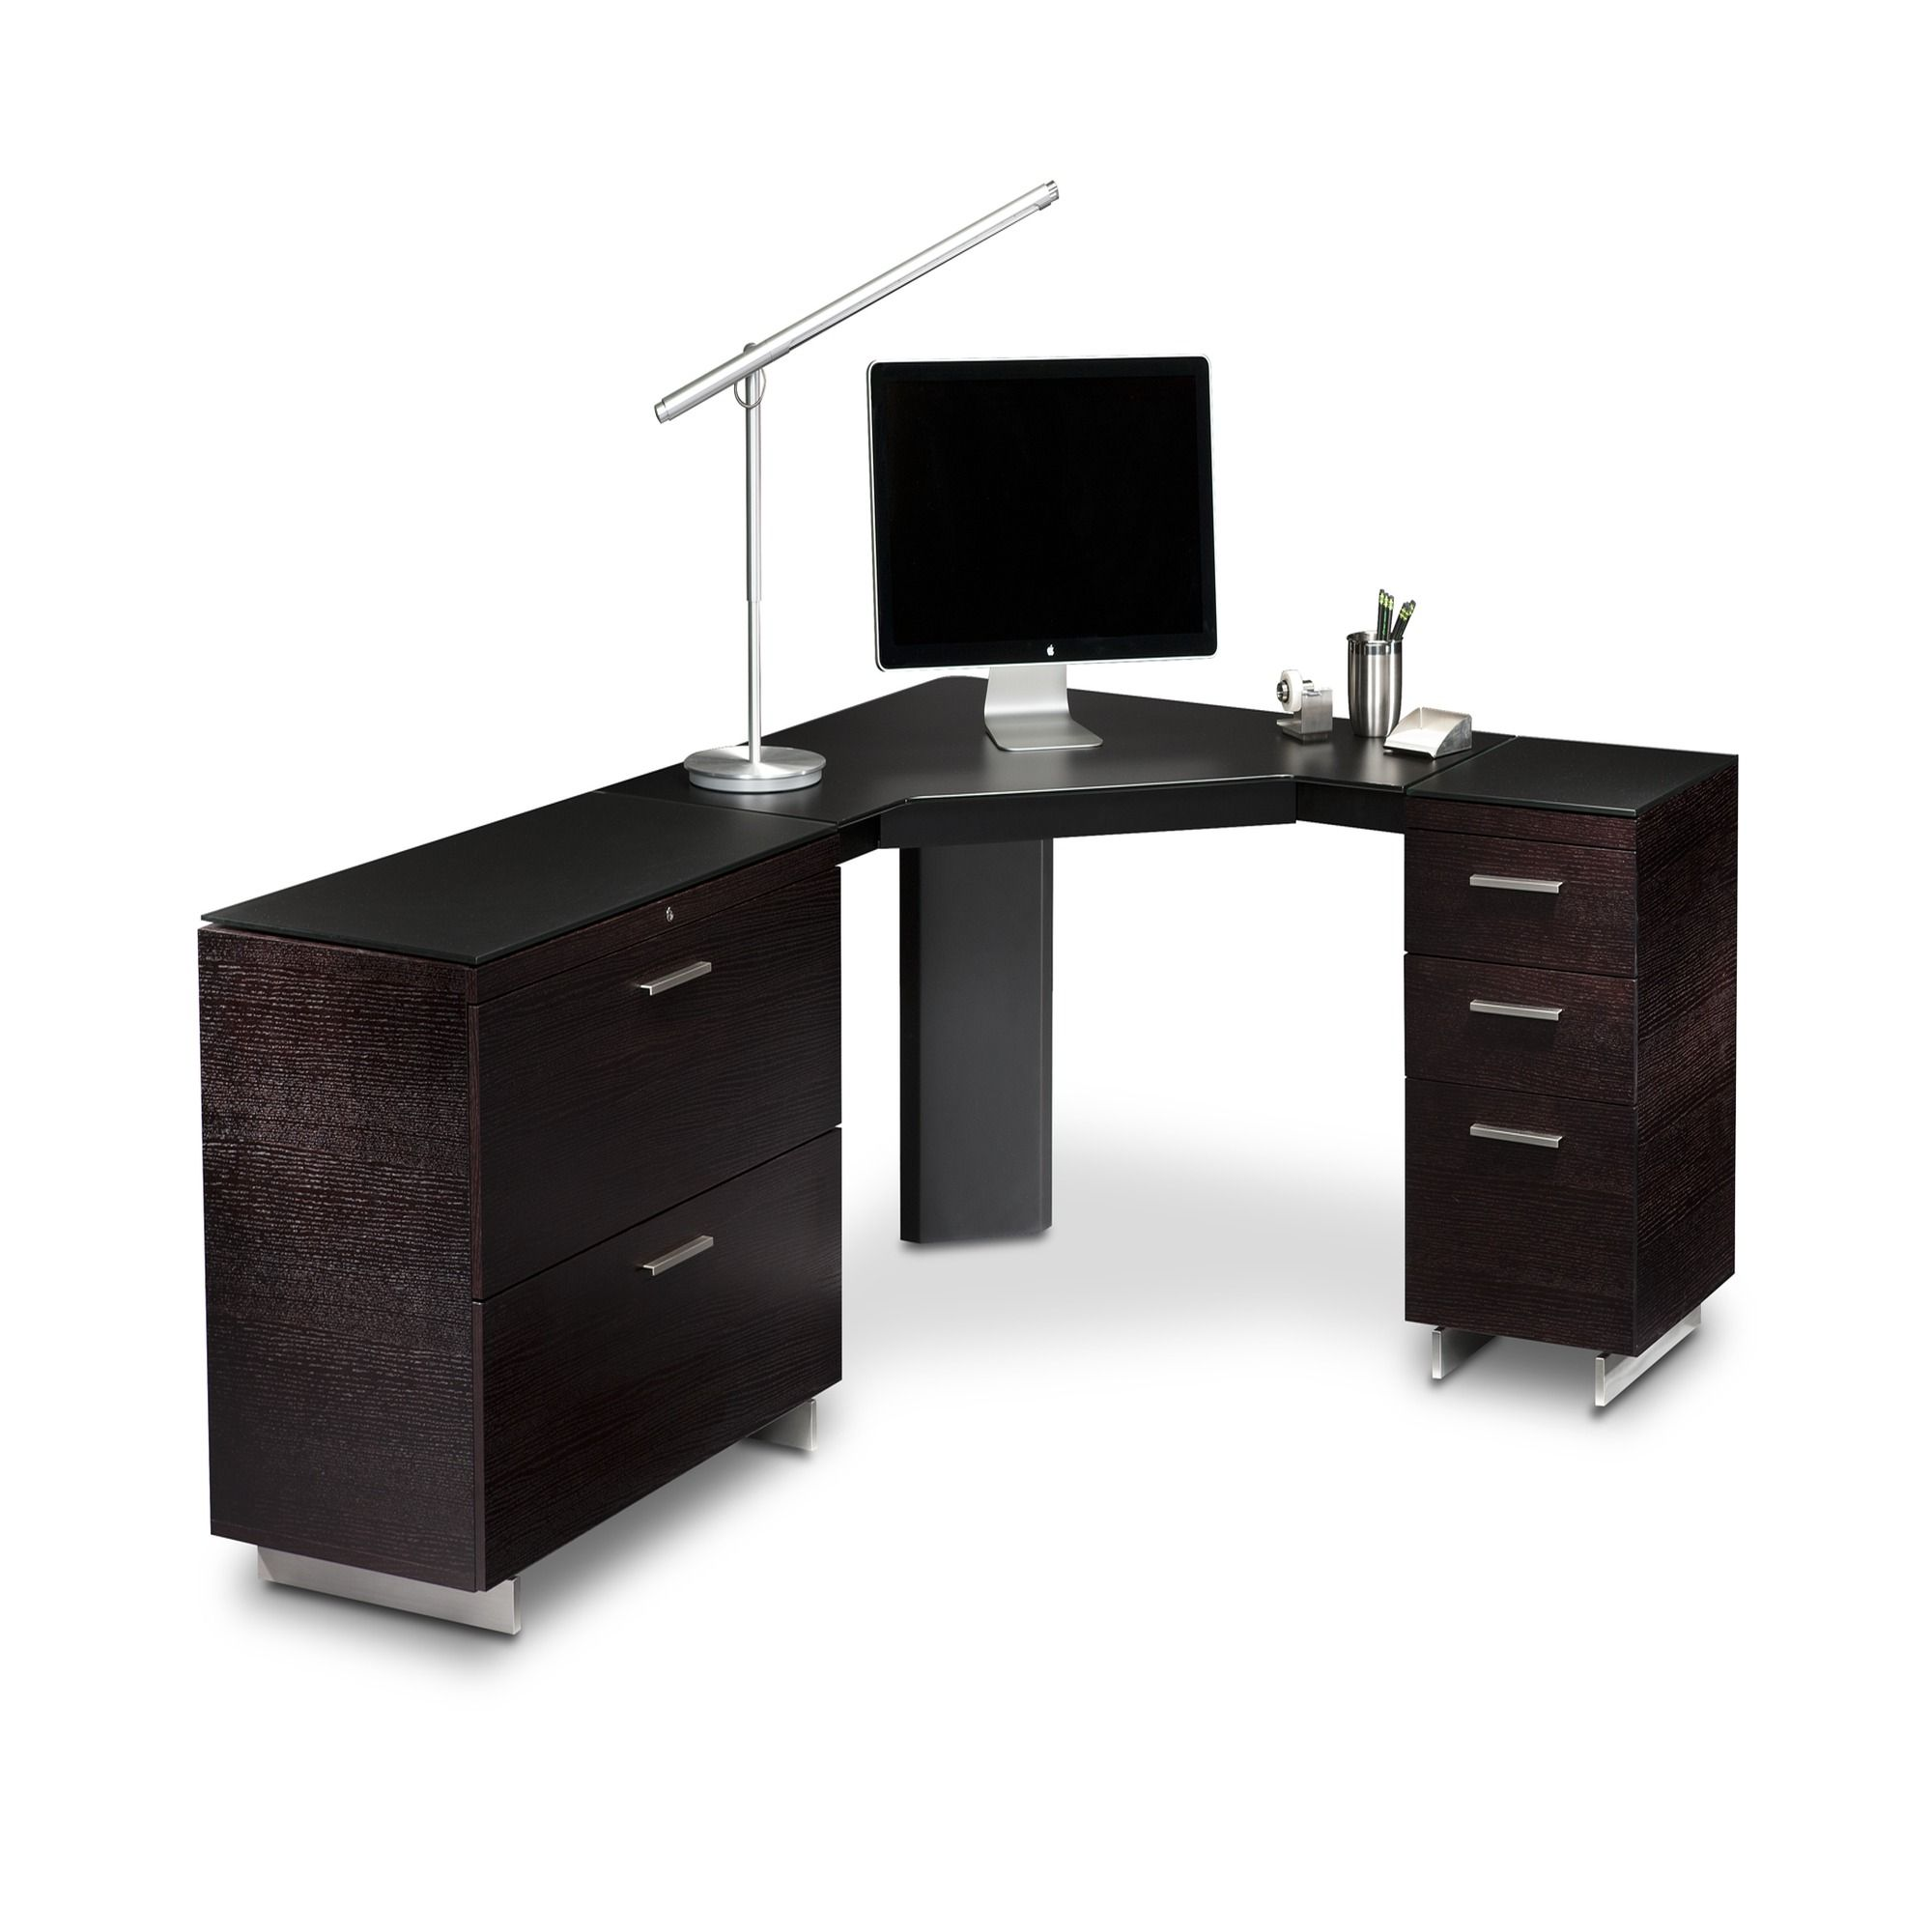 The Peninsula Desk 6018 Is Part Of BDIu0027s Sequel Office Furniture Collection.  The Desk 6018 Integrates With Other Pieces Of The Sequel Collection.